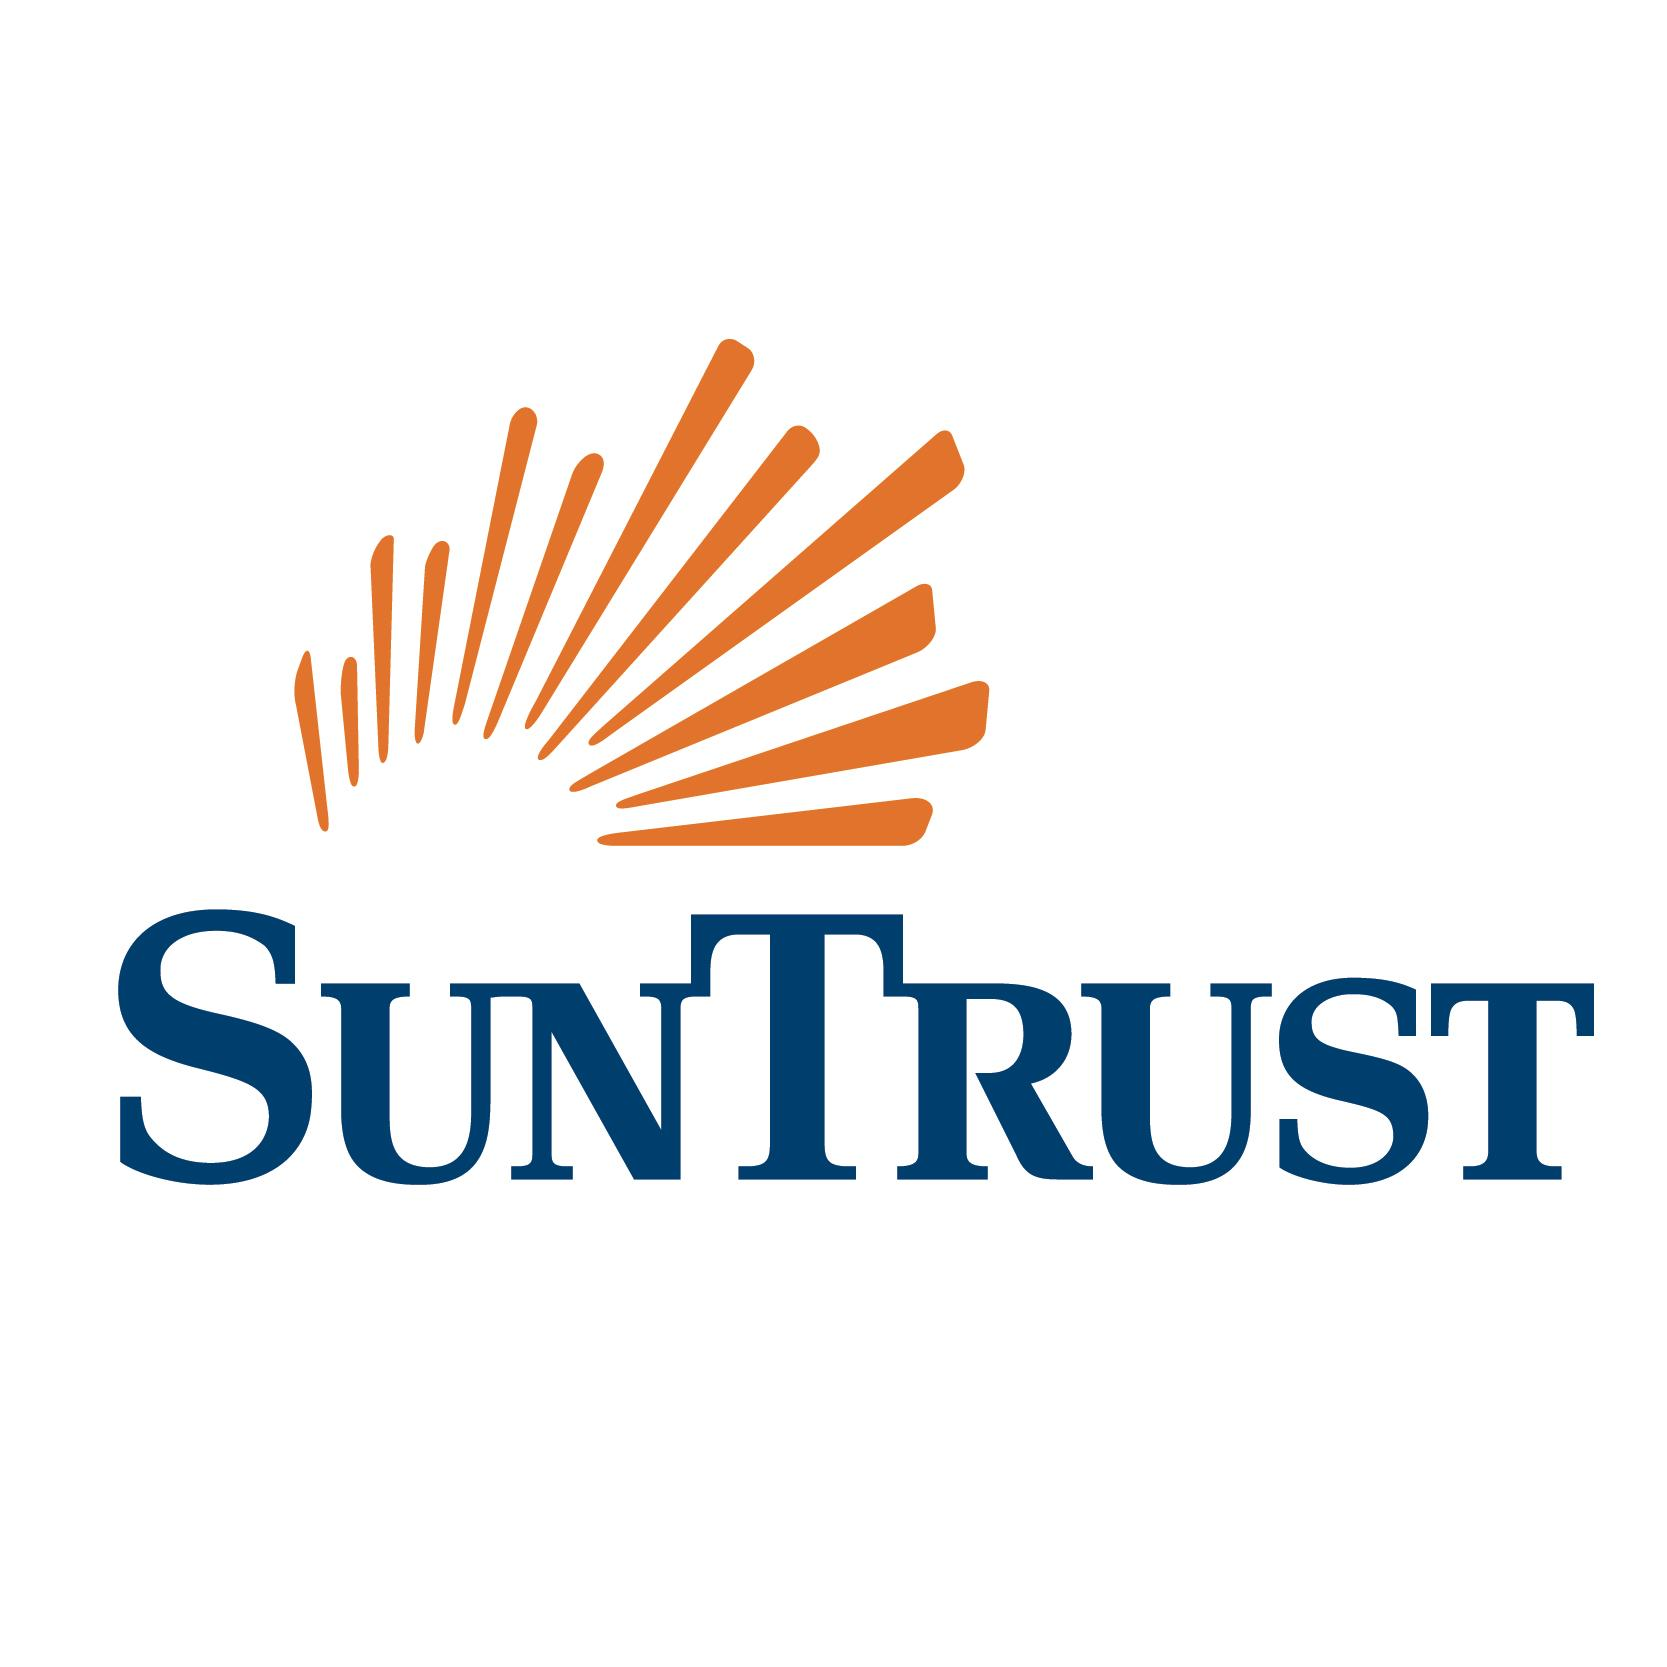 SunTrust - Doral, FL 33166 - (305)591-6052 | ShowMeLocal.com